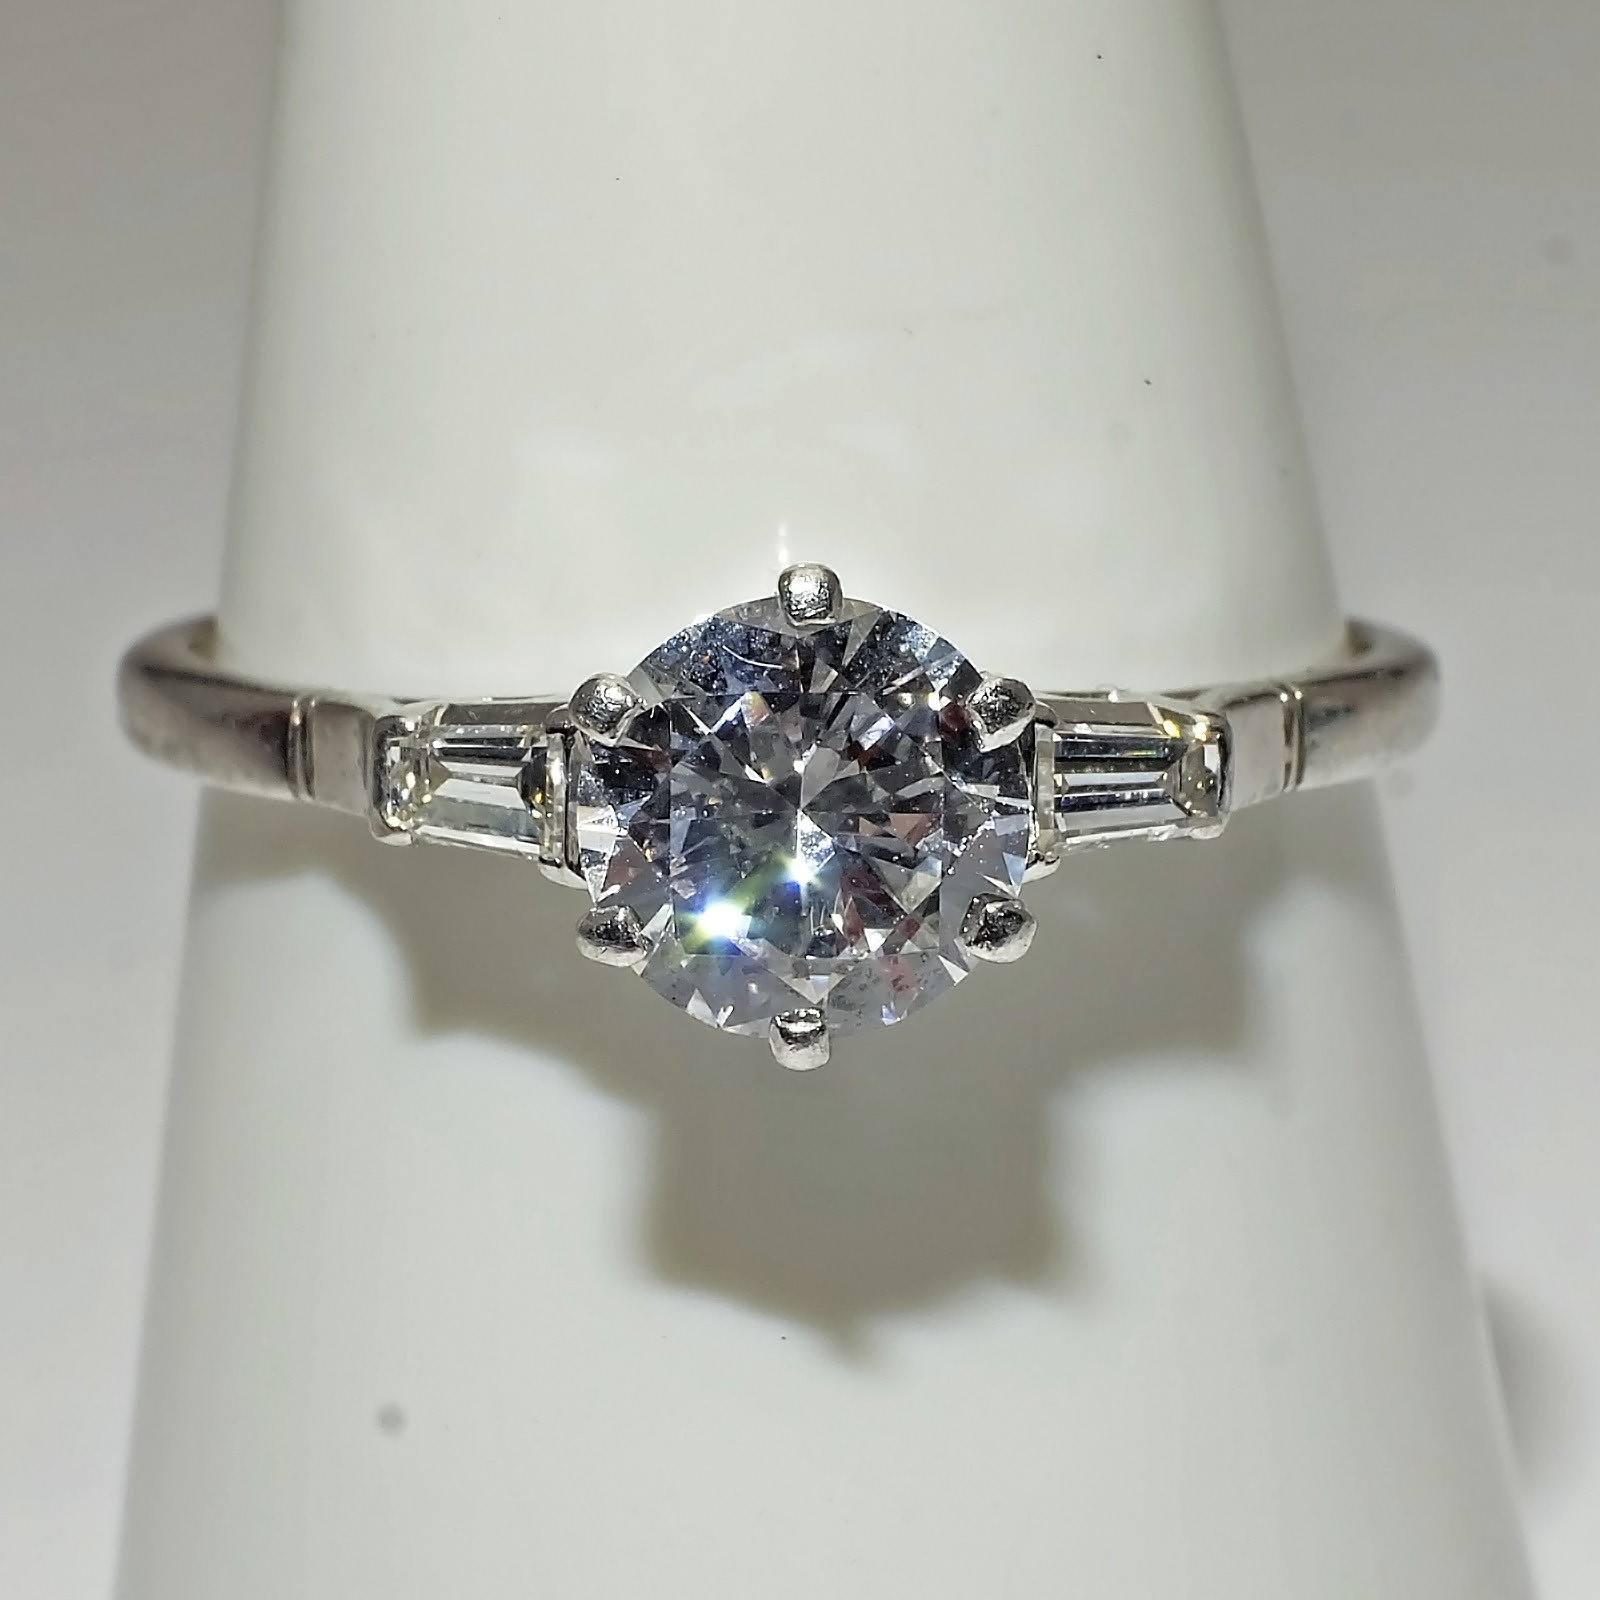 'Platinum Ring with at Centre a Round Brilliant Cut Diamond 0.90ct (F/G VS2) in a Six Claw Pierced Setting, On either Side a Tapered Baguette Diamond'